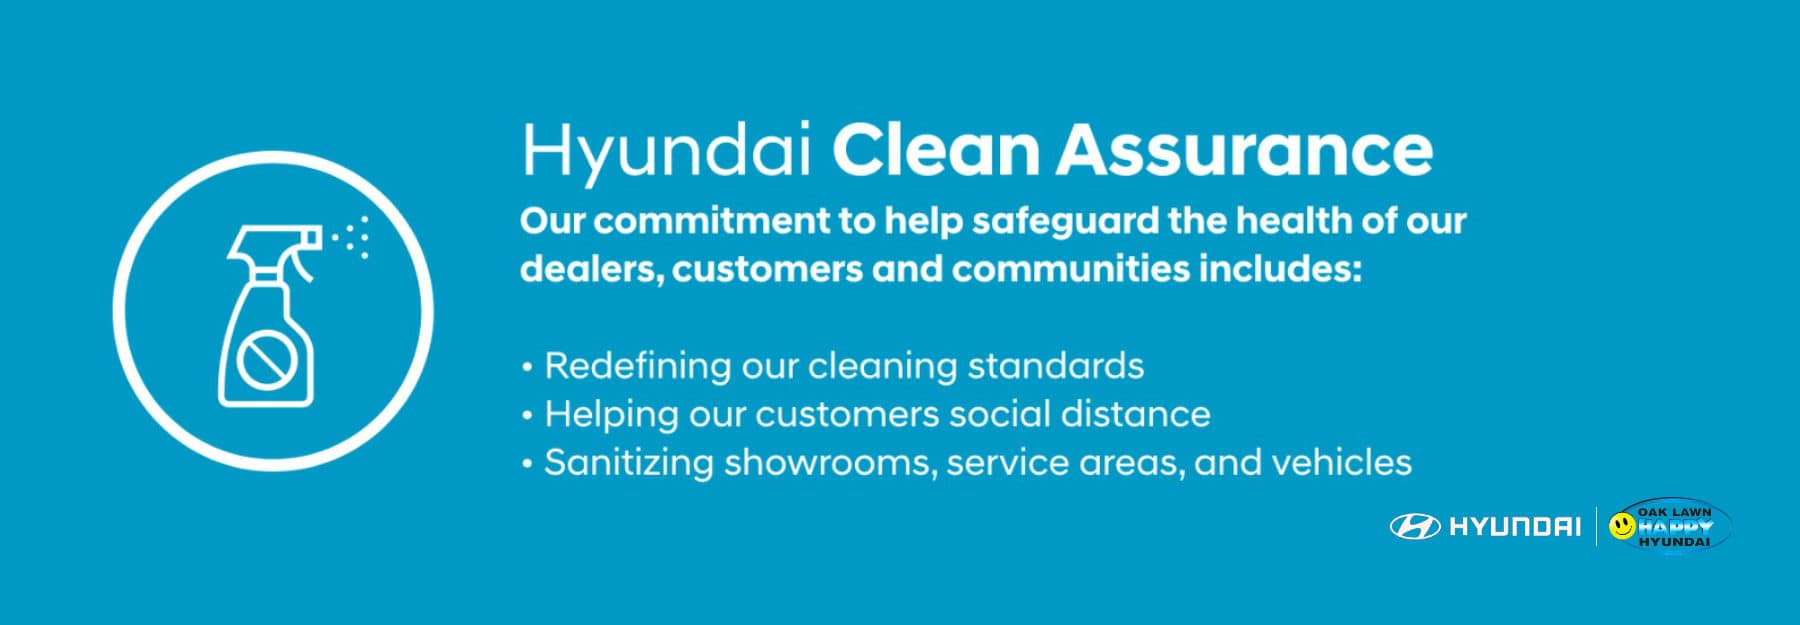 September-2020 Clean Assurance_Happy_Hyundai_1400x514